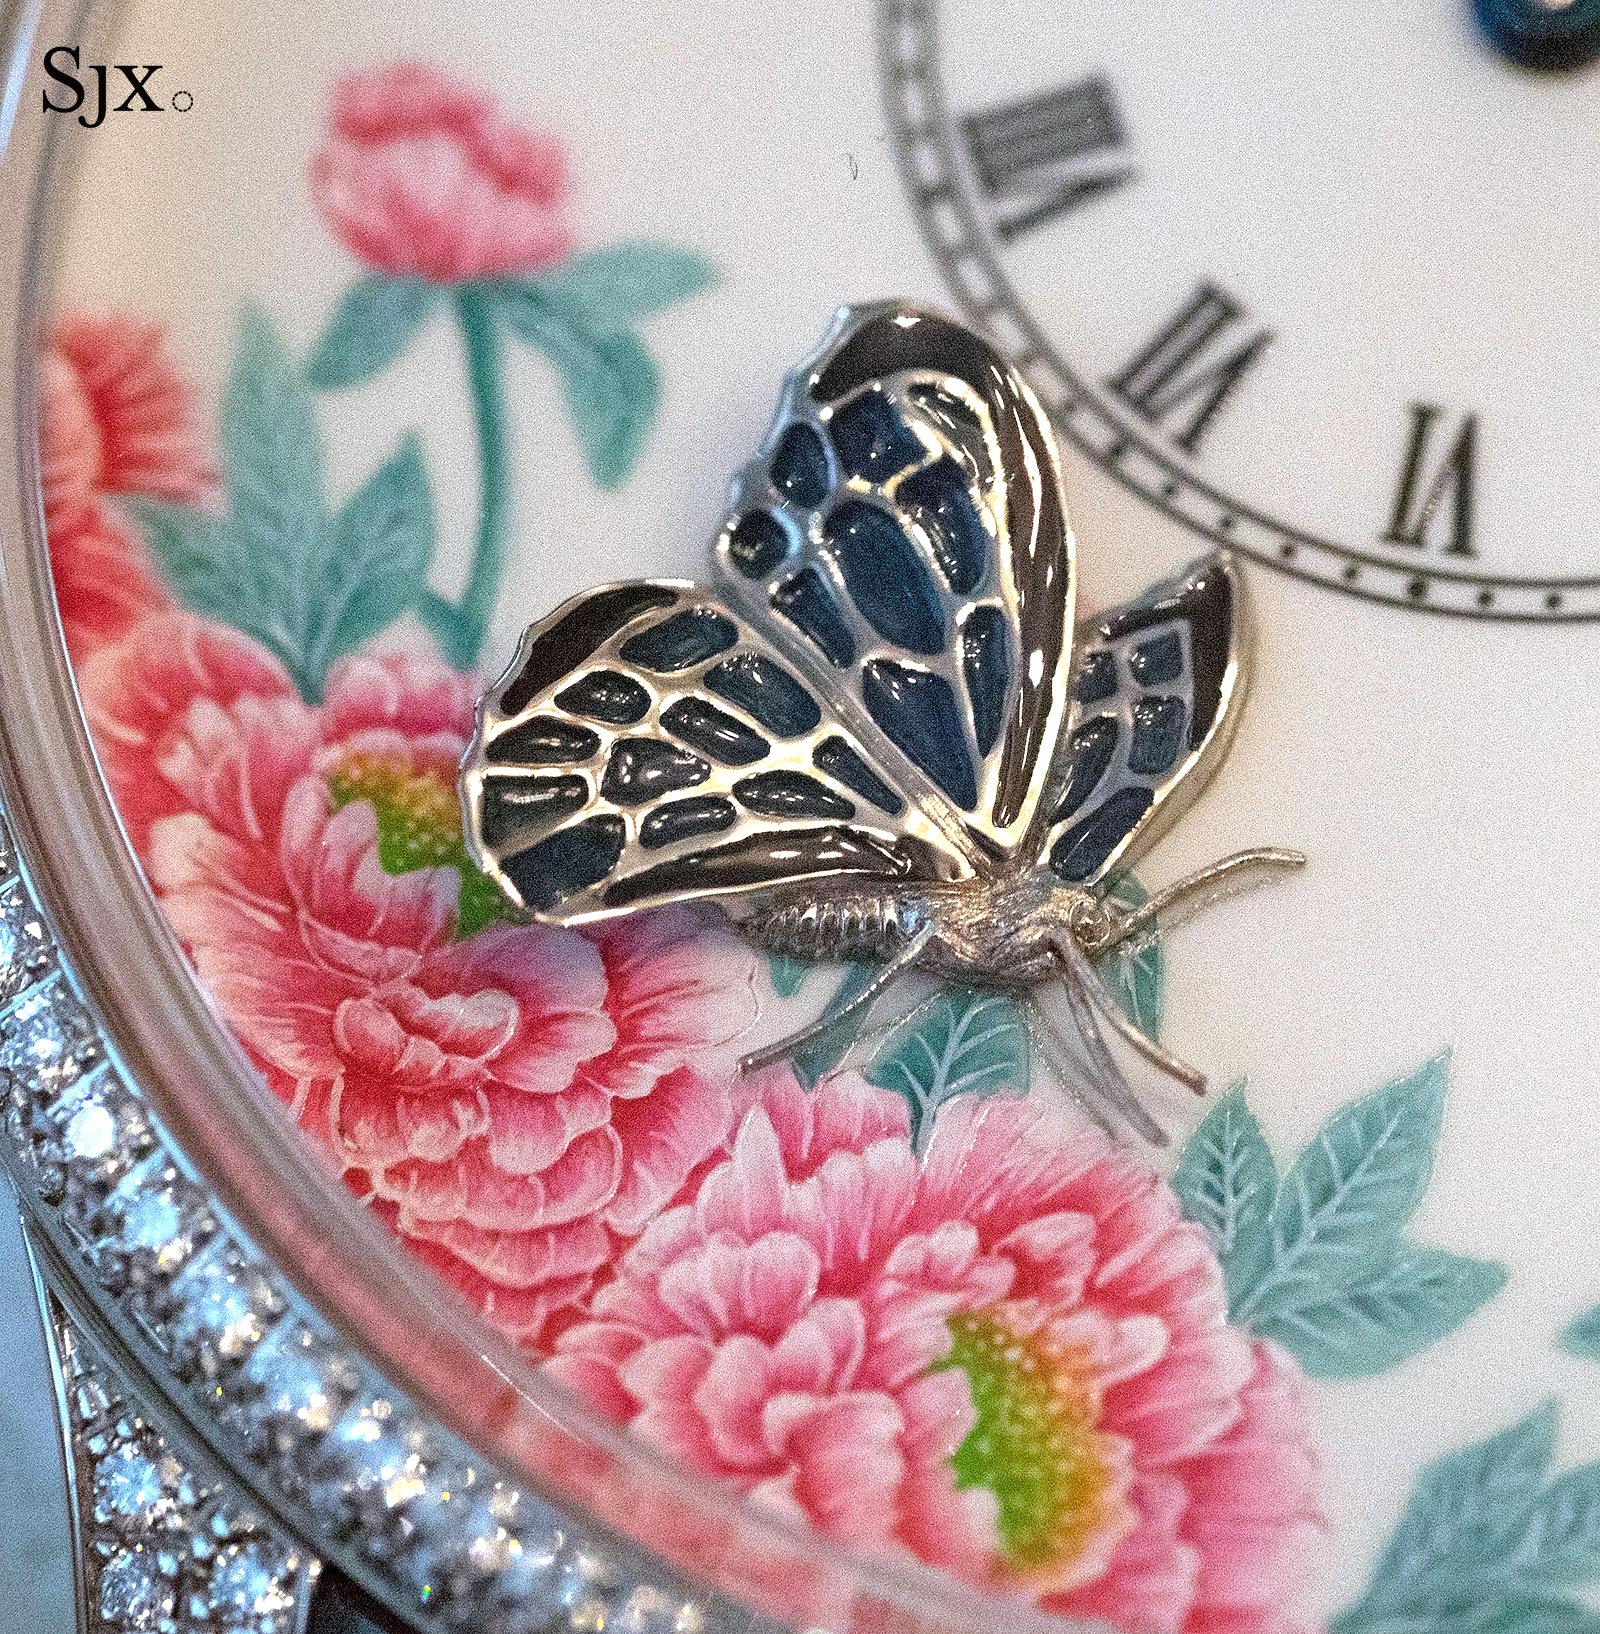 Jaquet Droz Petite Heure Minute The Butterfly Journey 6